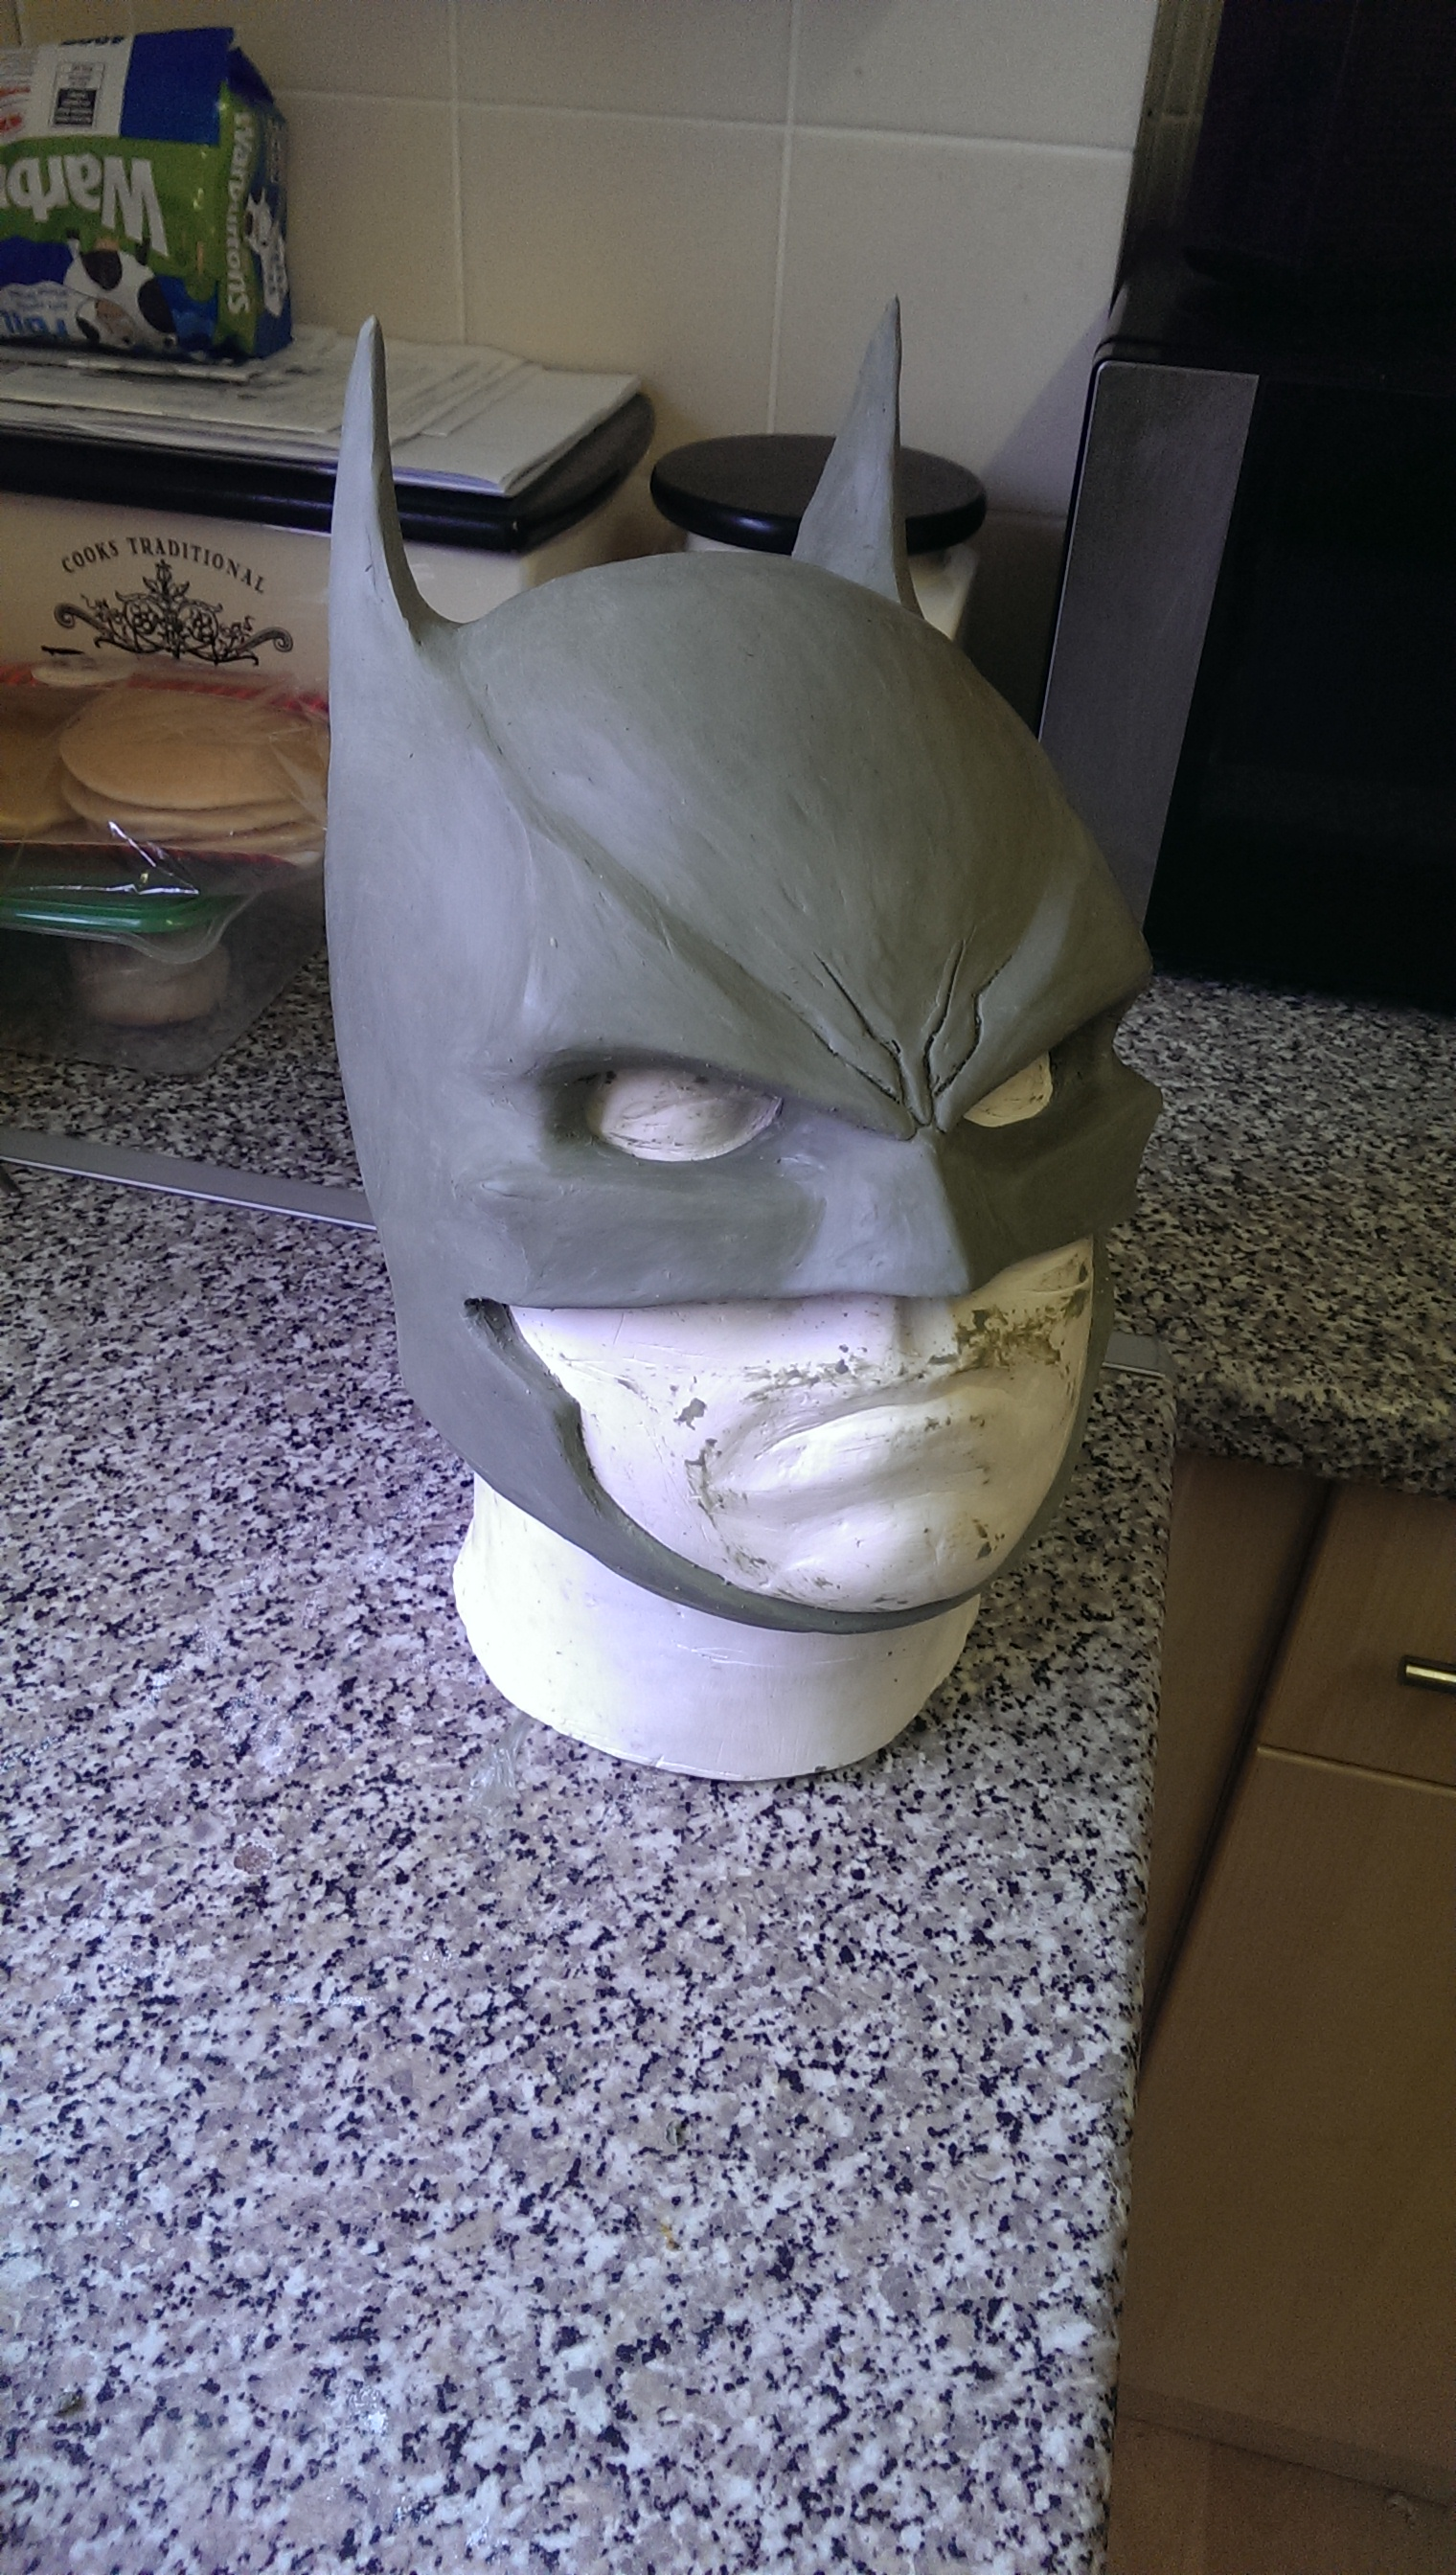 week 2, a little refining and trying to put a little character into the mask, the arkham origins mask was a big inspiration.